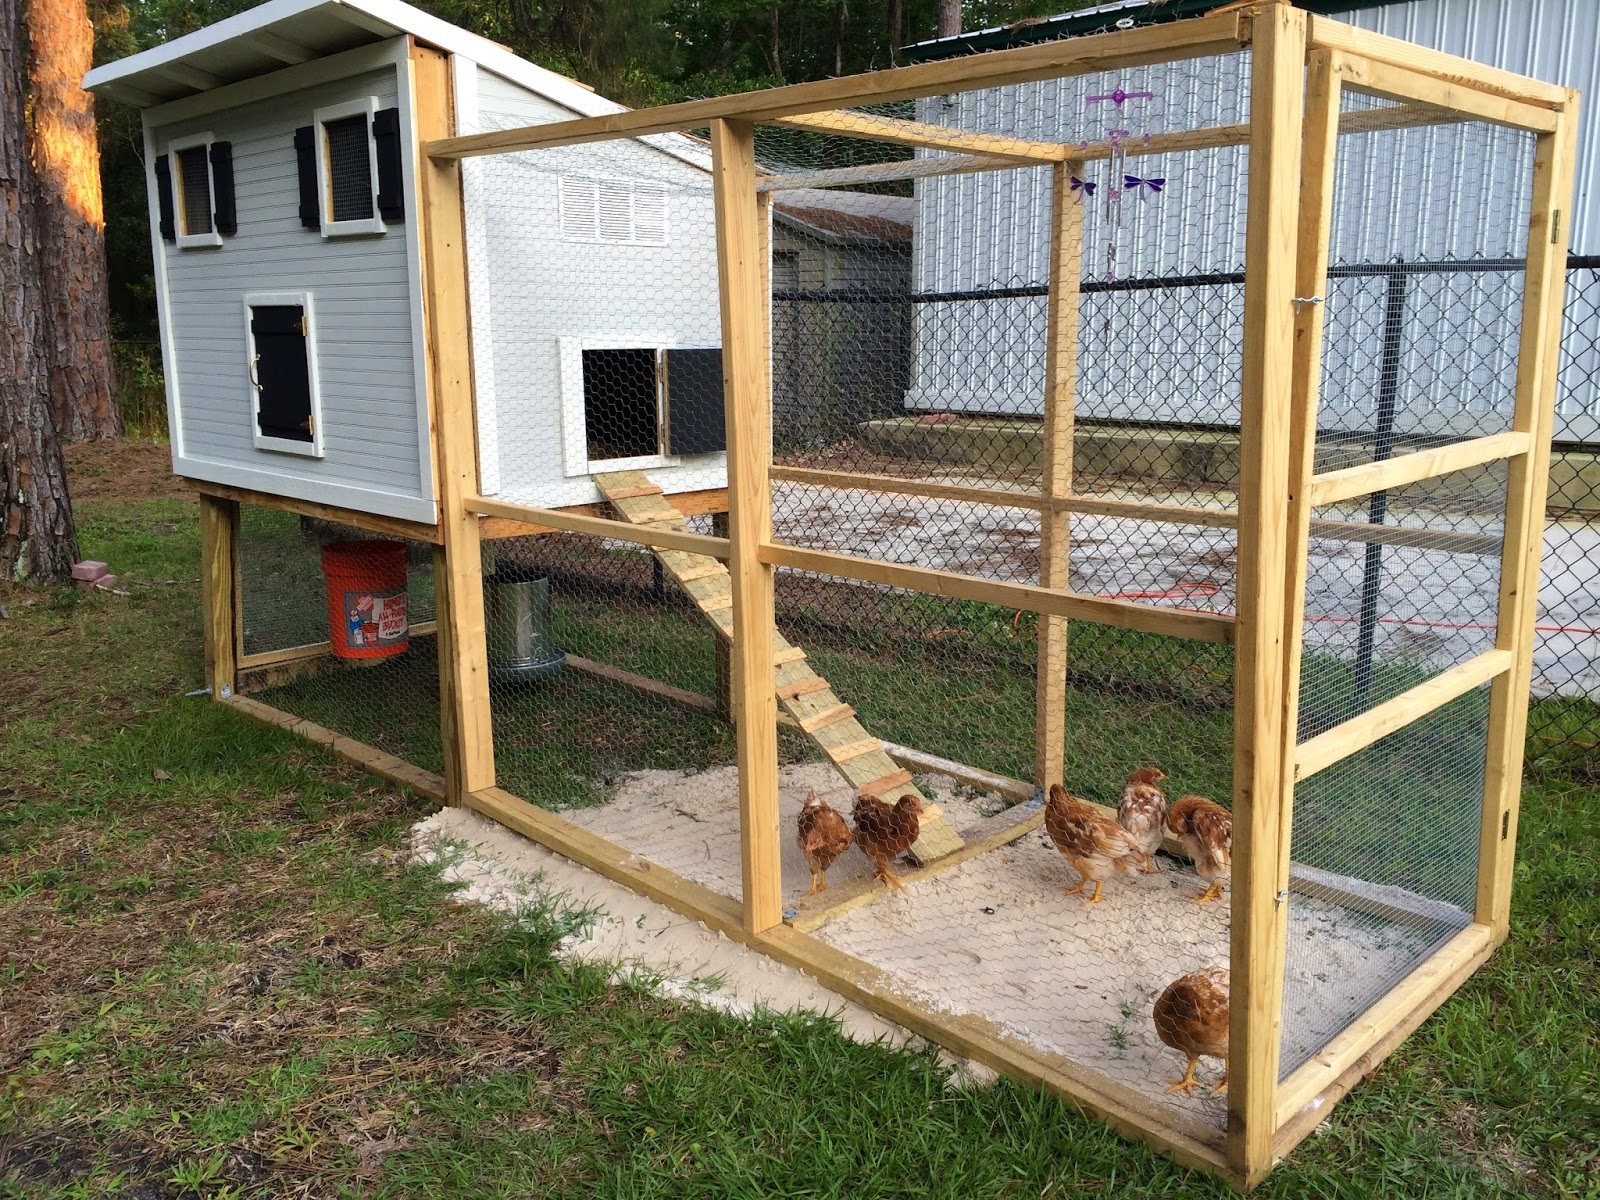 Diy Walk In Chicken Coop Fabulously Vintage I Built A Chicken Coop And I Want To